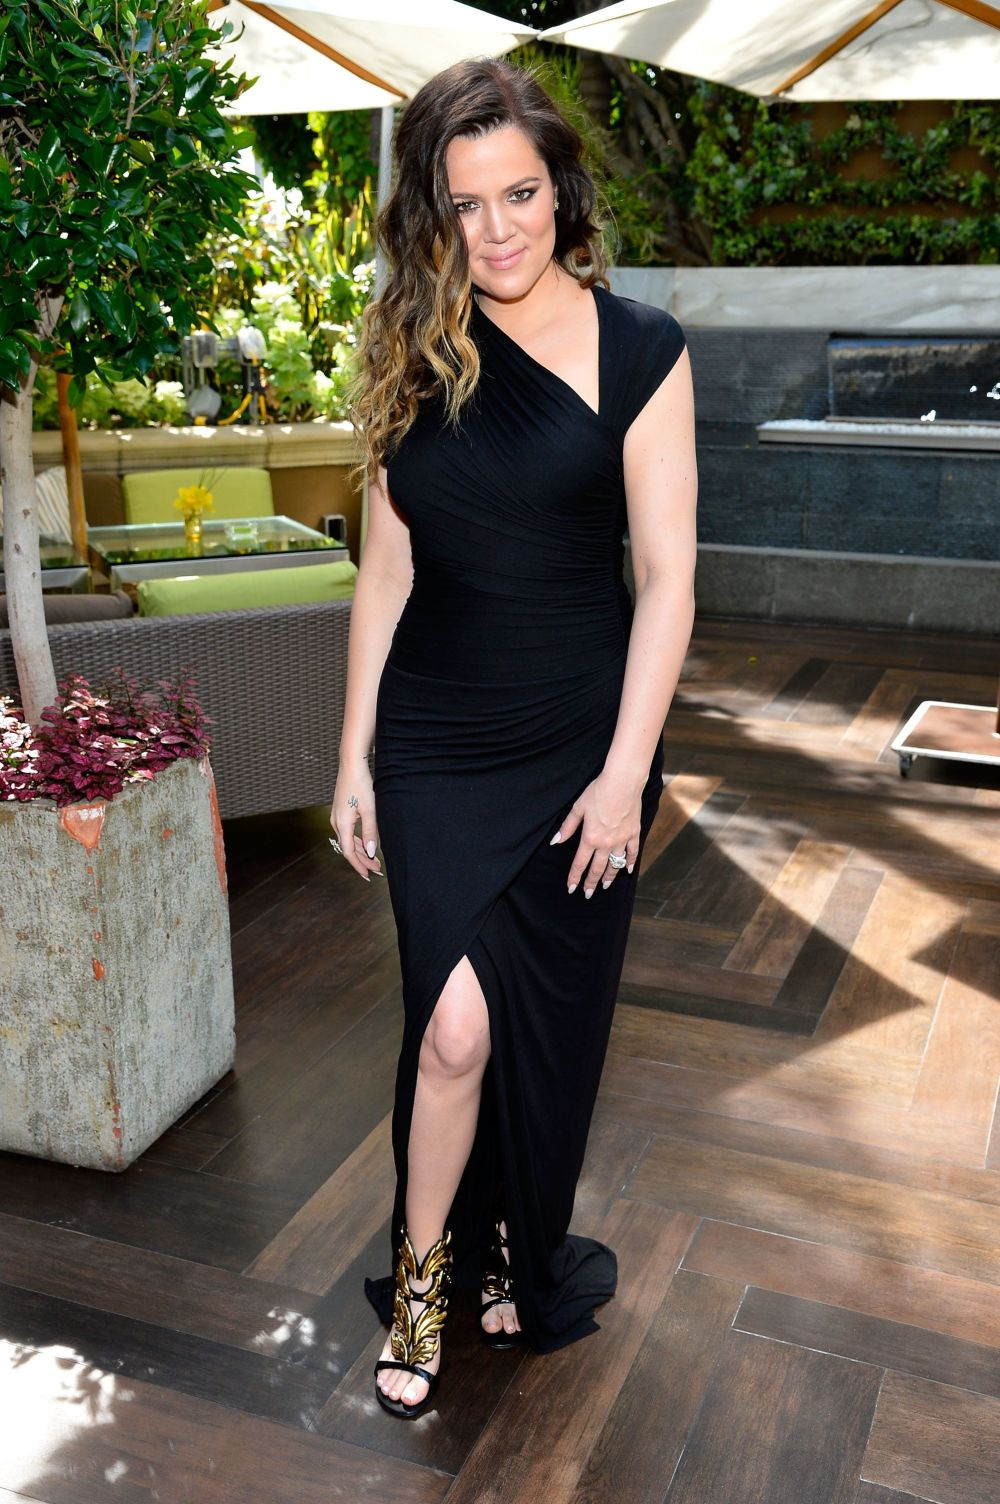 At DuJour magazine's spring issue collaboration with Kim Kardashian and Bruce Weber at the Four Seasons Hotel Los Angeles.